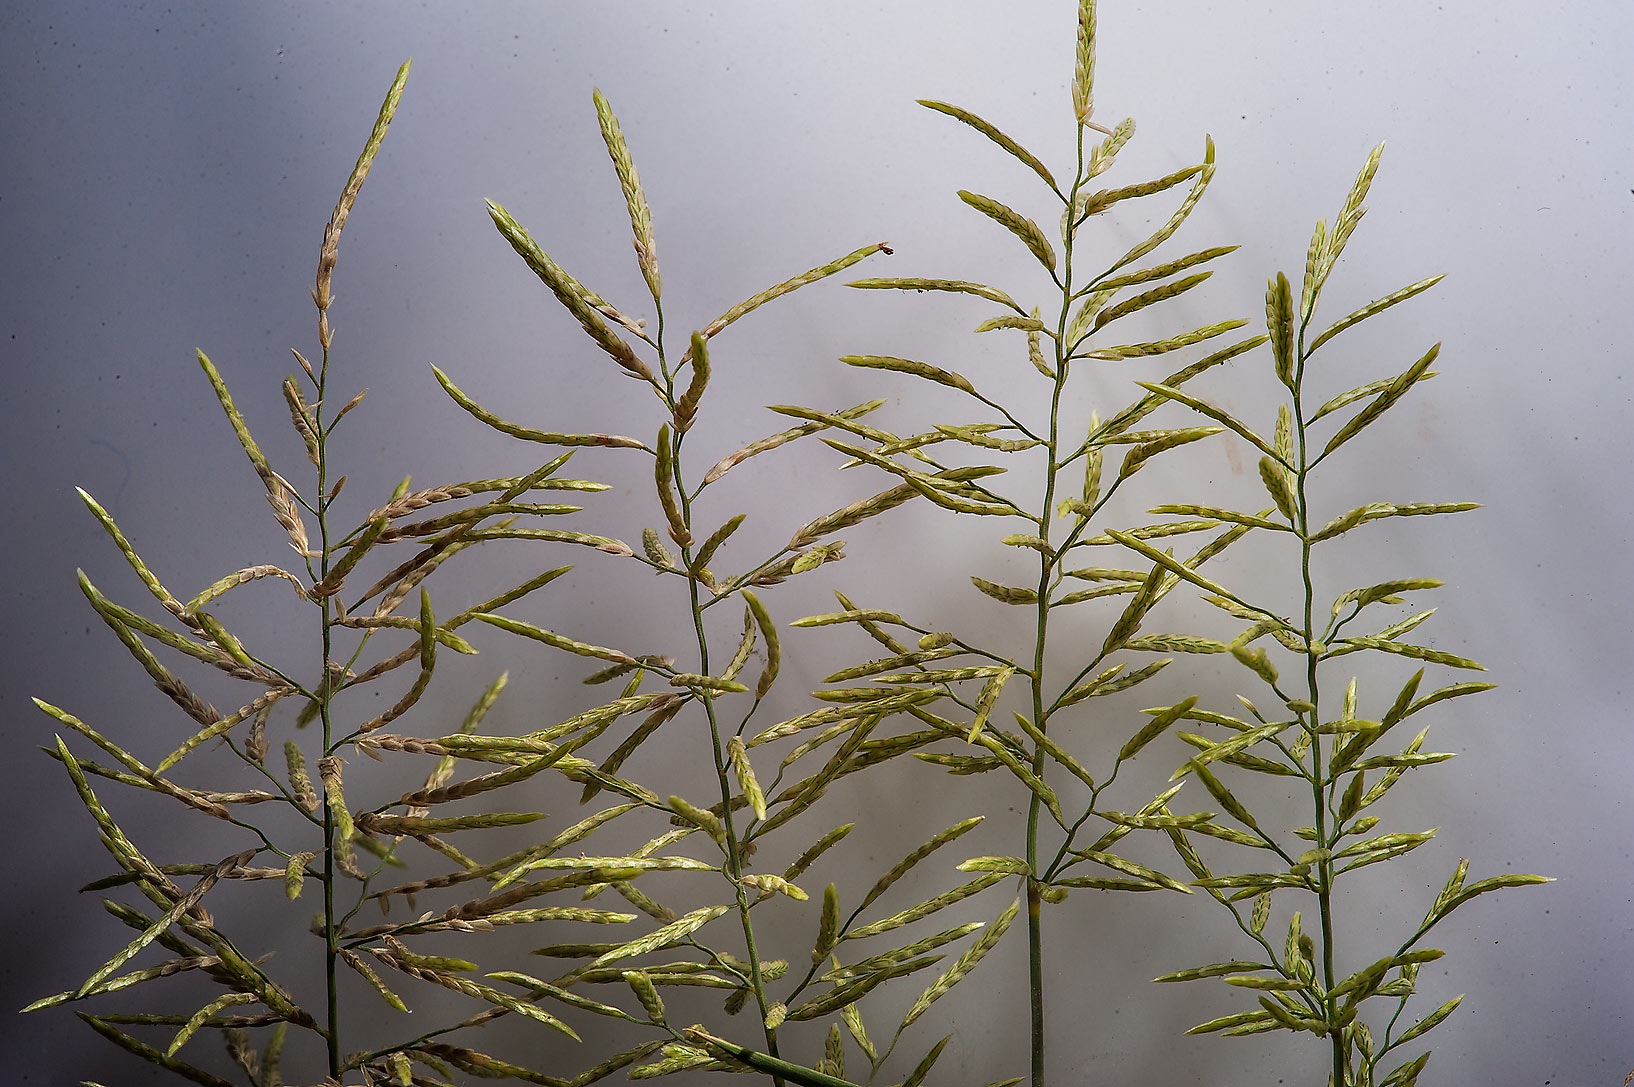 Spikelets of annual lovegrass (Eragrostis...St. Street in Onaiza area. Doha, Qatar